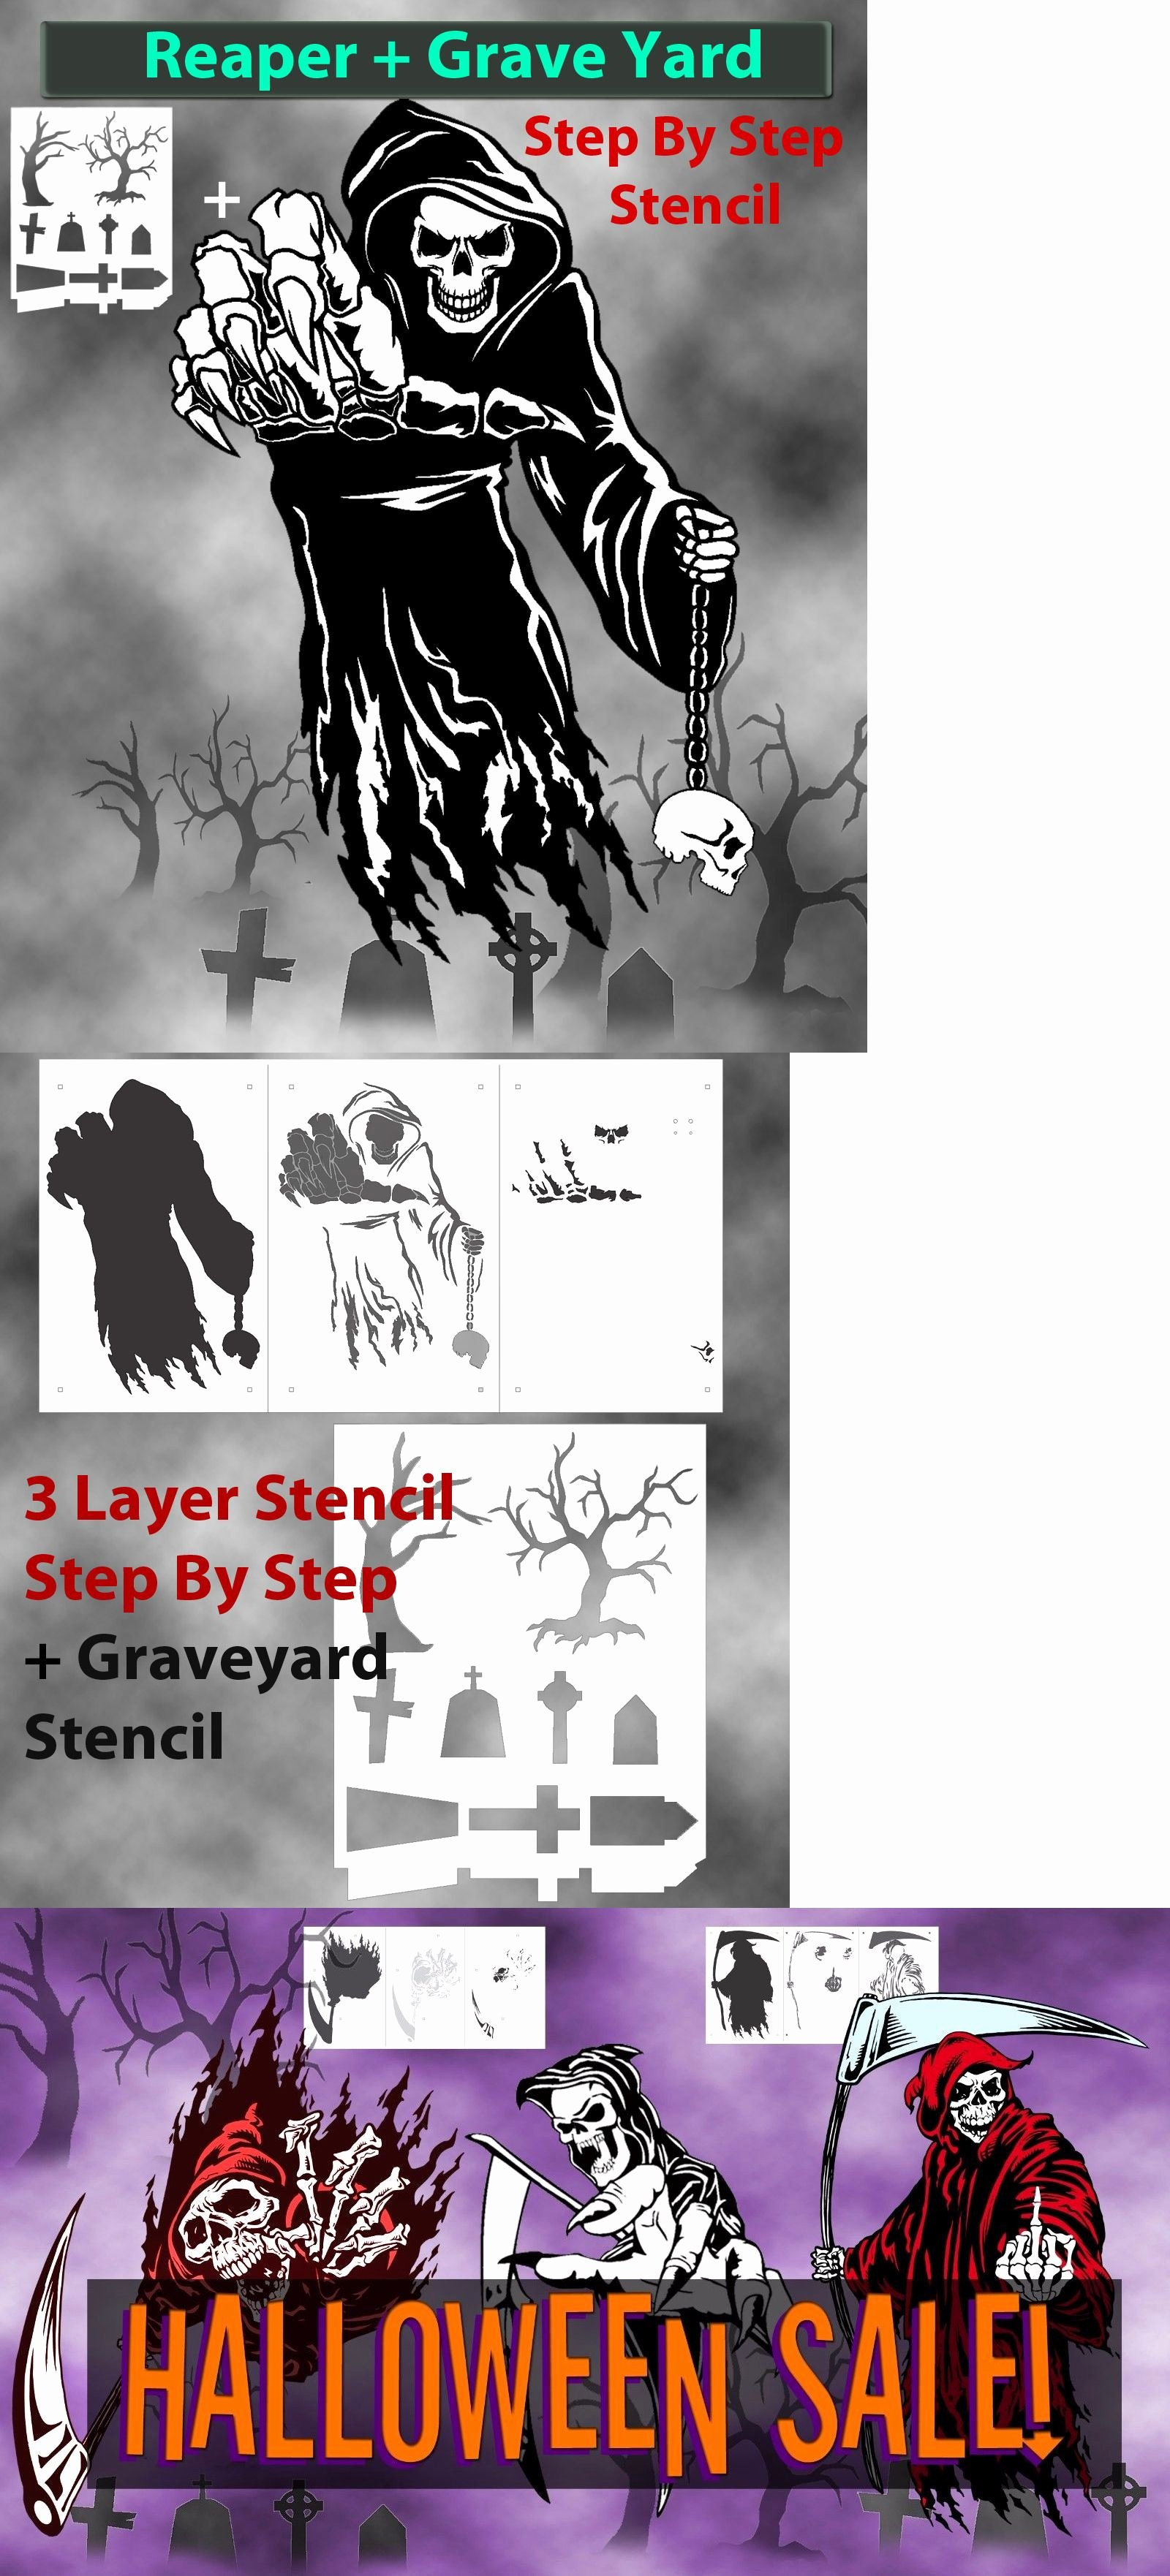 Multi Layered Airbrush Stencils Luxury Stencils and Templates Grim Reaper 11 Airbrush